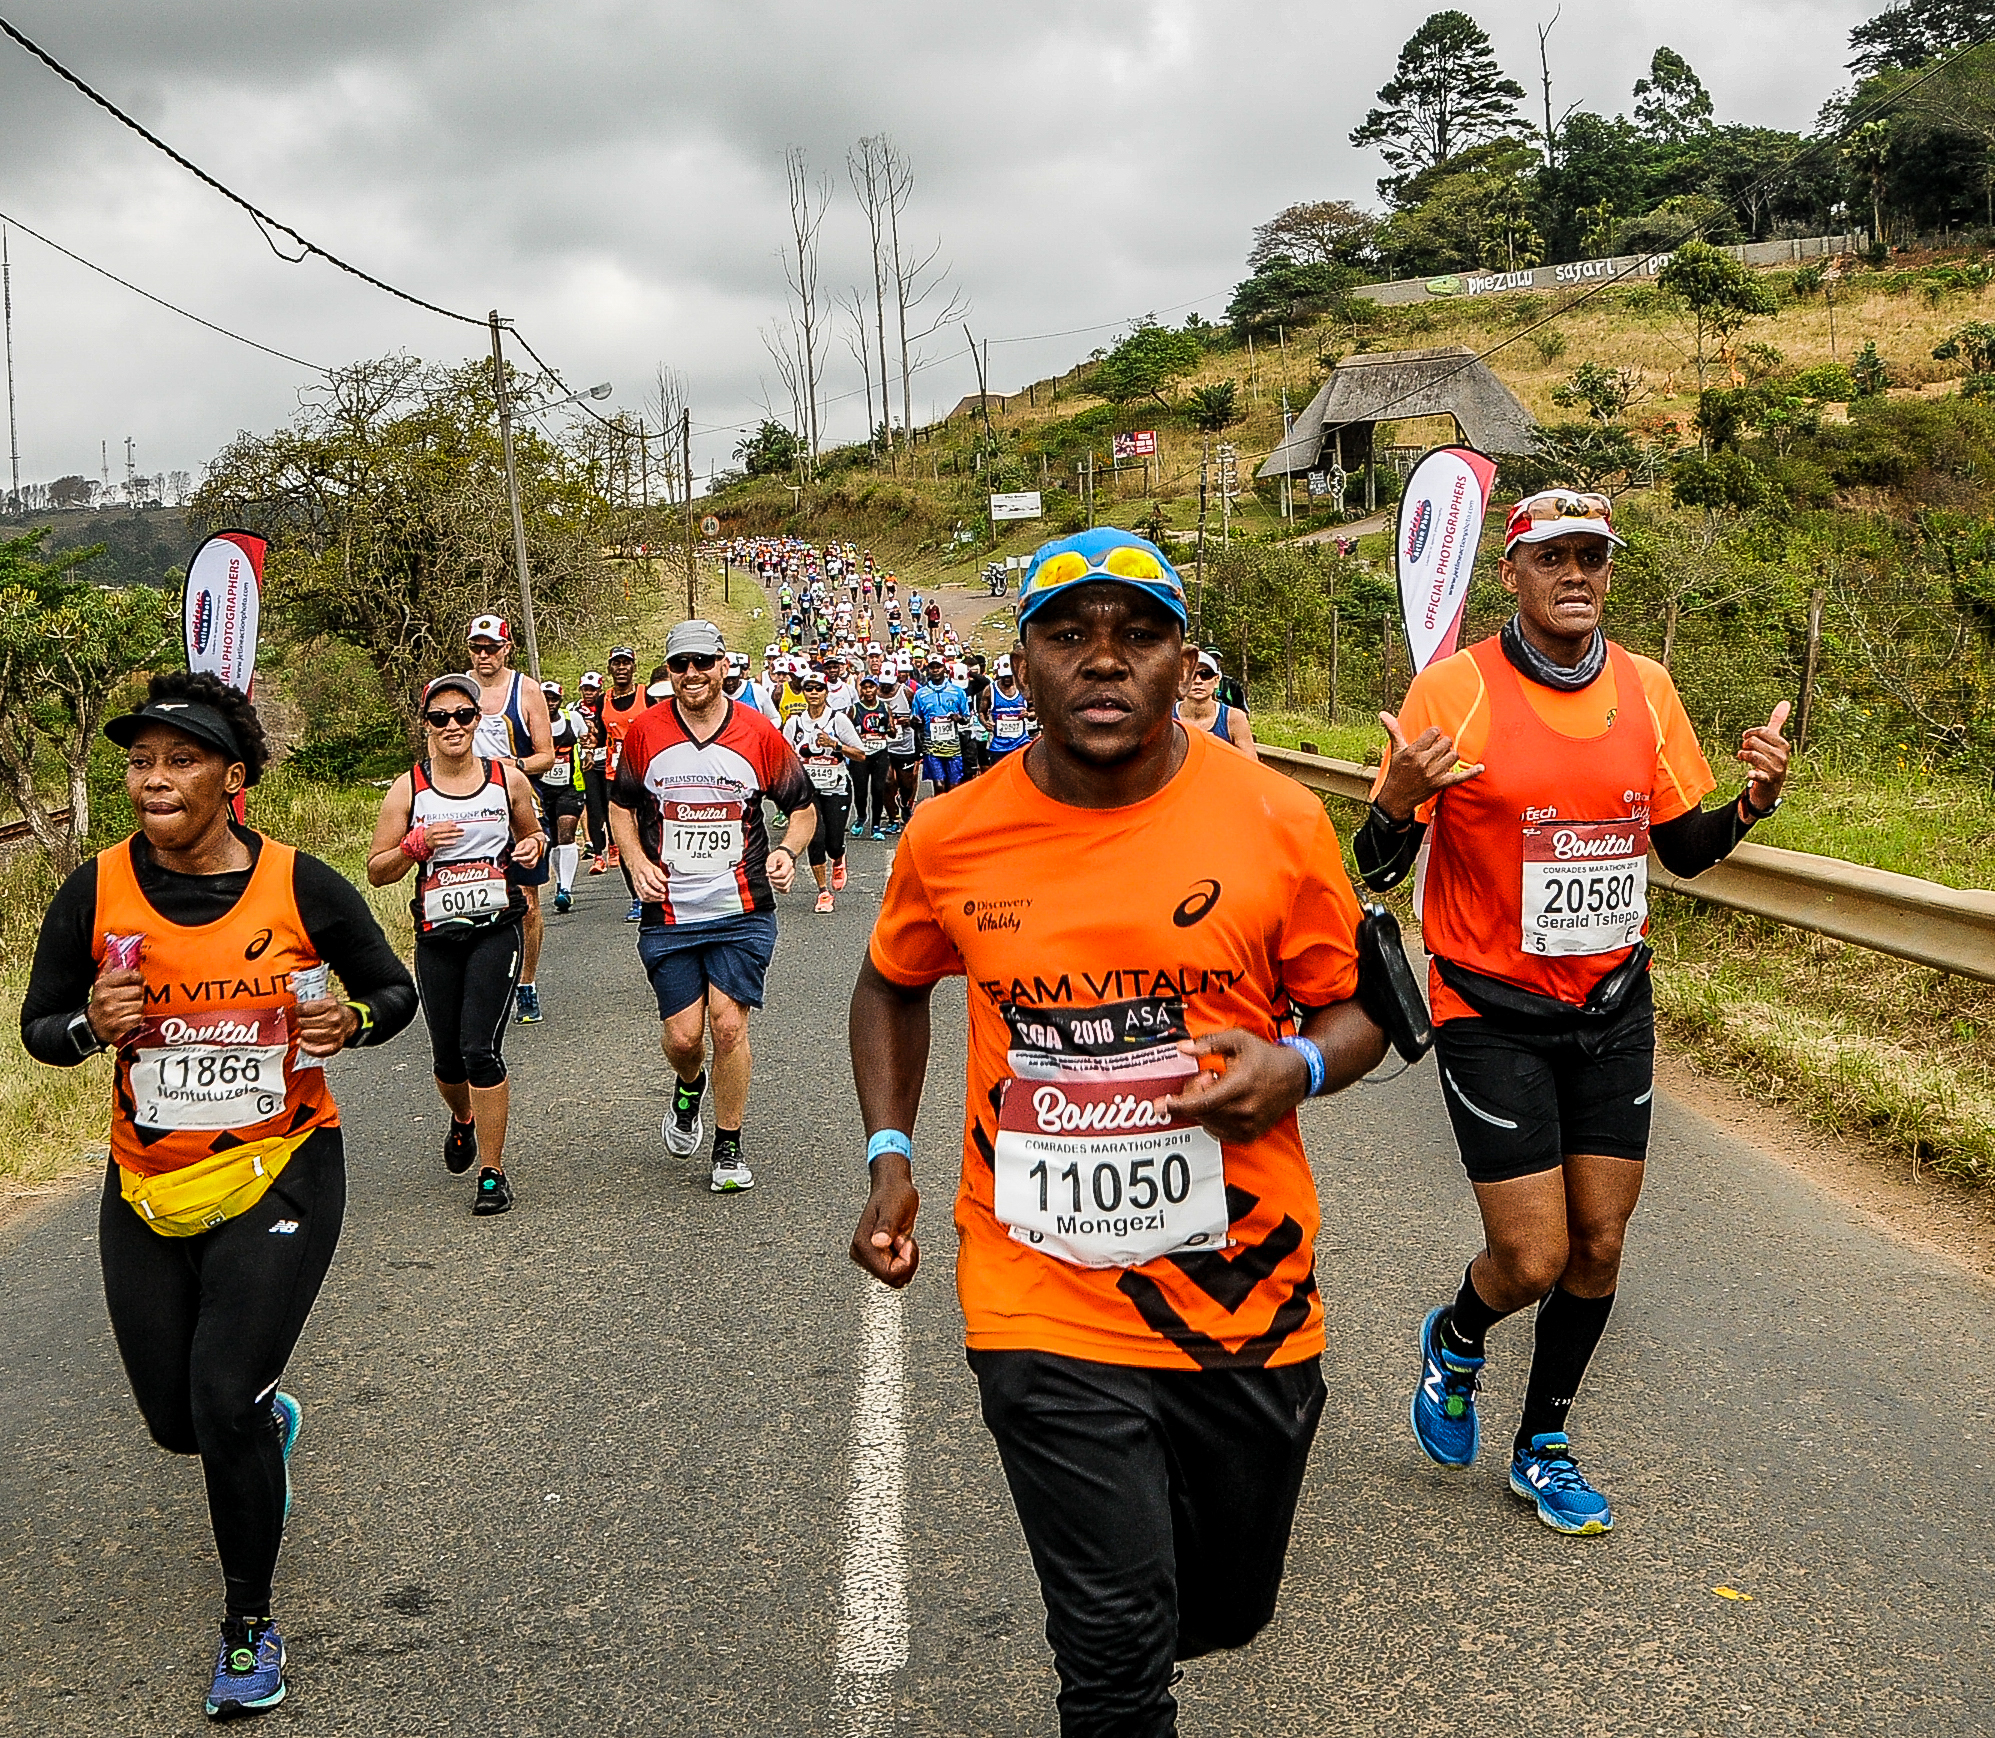 Finishing the Comrades 2018 Marathon and Finding Great Curry